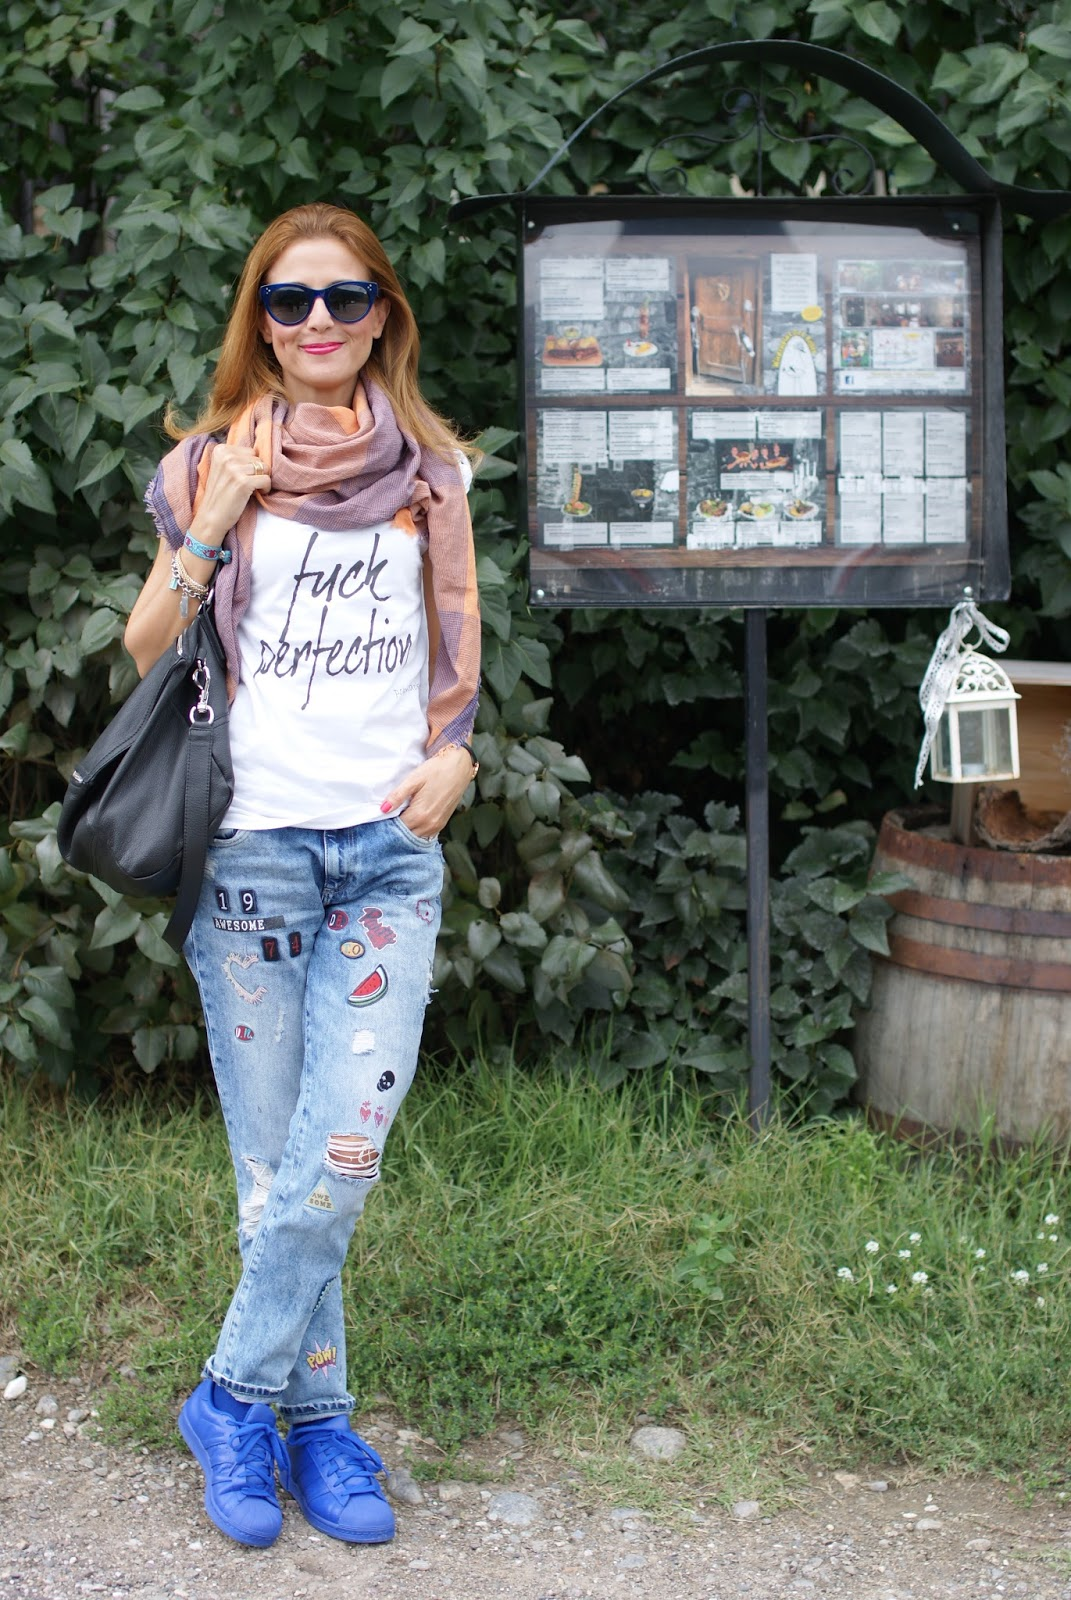 Fuck perfection, a rebel fashion outfit with my Pokemaoke t-shirt, Givenchy Pandora bag and patchy jeans on Fashion and Cookies fashion blog, fashion blogger style in Weidenplatzerkeller in Naturns